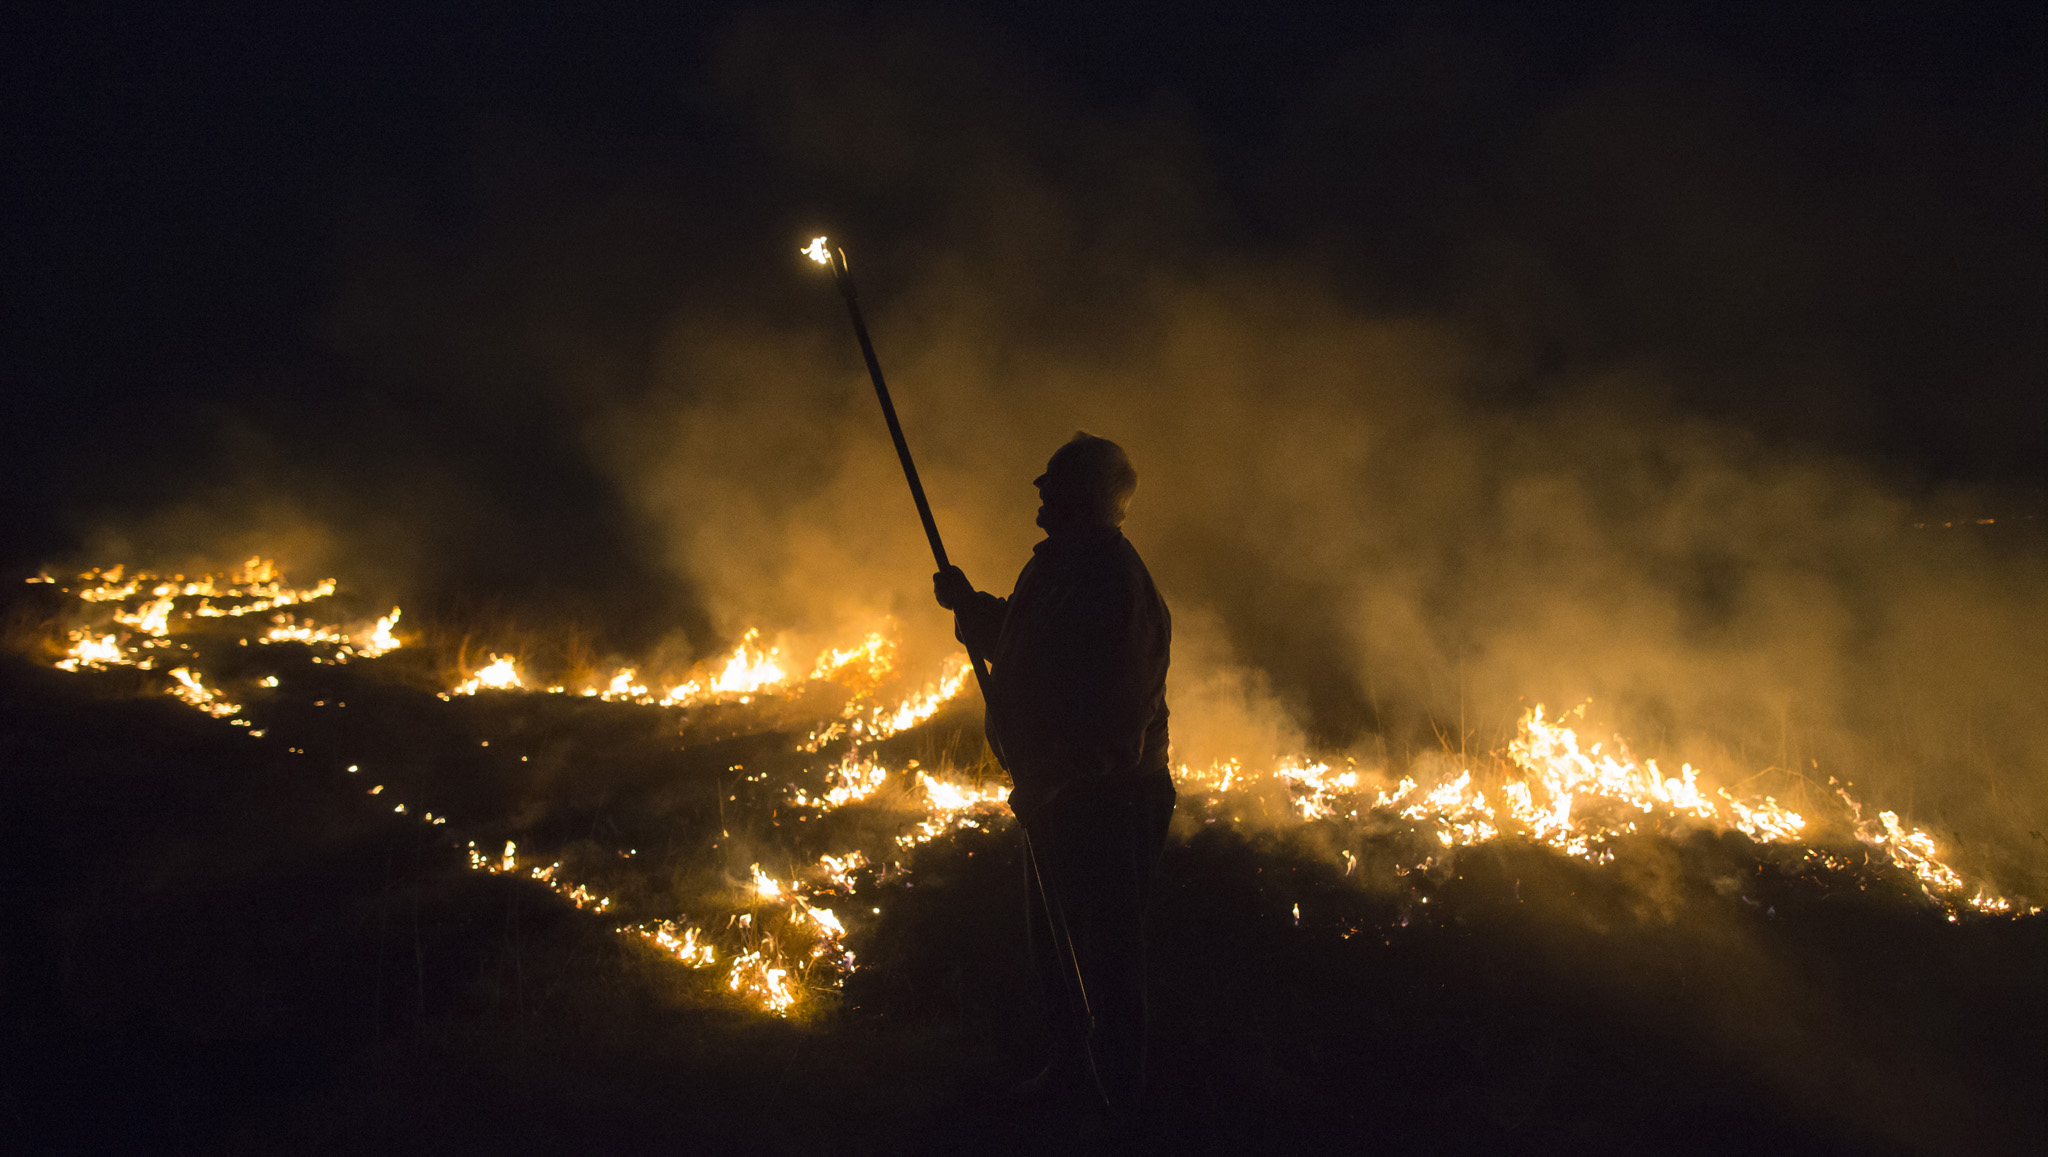 Rancher Fred Berns holds fire pole while lighting a controlled pasture fire near Florence, Kan., Wednesday, April 13, 2016. Ranchers in the Flint Hills of Kansas routinely burn their pastures in the spring to promote the growth of new grass for cattle to graze on. (Travis Heying/The Wichita Eagle via AP) LOCAL TELEVISION OUT; MAGS OUT; LOCAL RADIO OUT; LOCAL INTERNET OUT; MANDATORY CREDIT